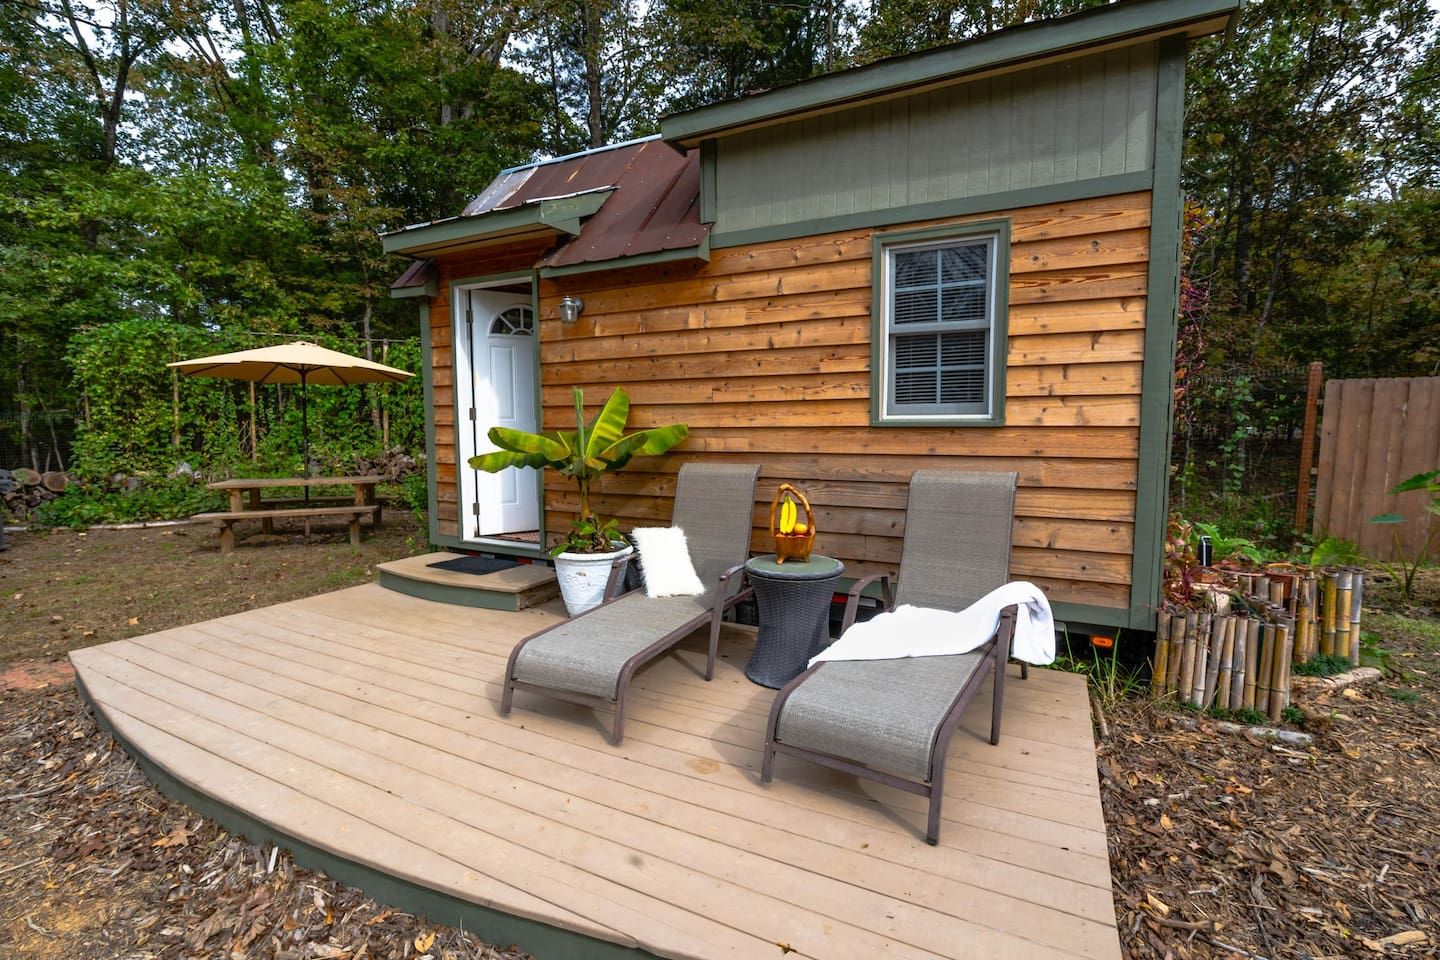 Our lovely tiny home! Enjoy the warmth of the afternoon sun from the patio with a cup of coffee/tea and snacks